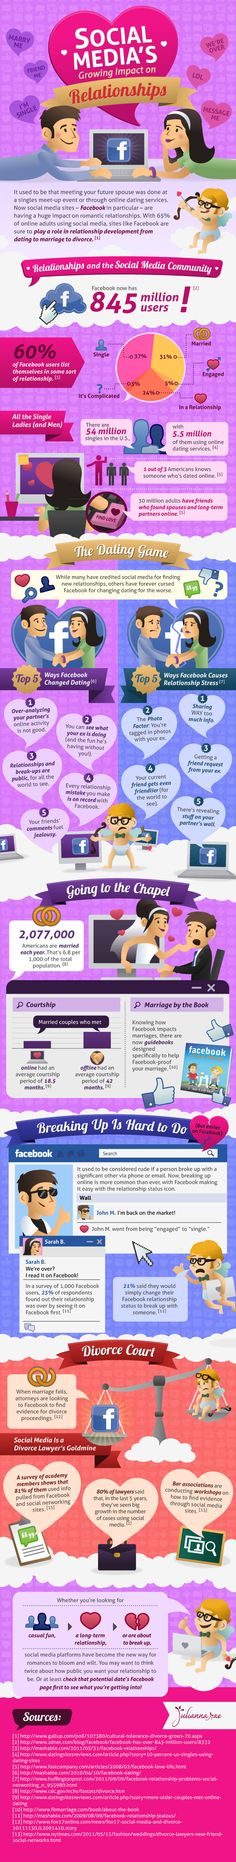 How social media can effect relationships, marriages and, yes, even divorce.  http://www.mddivorcelawyers.com